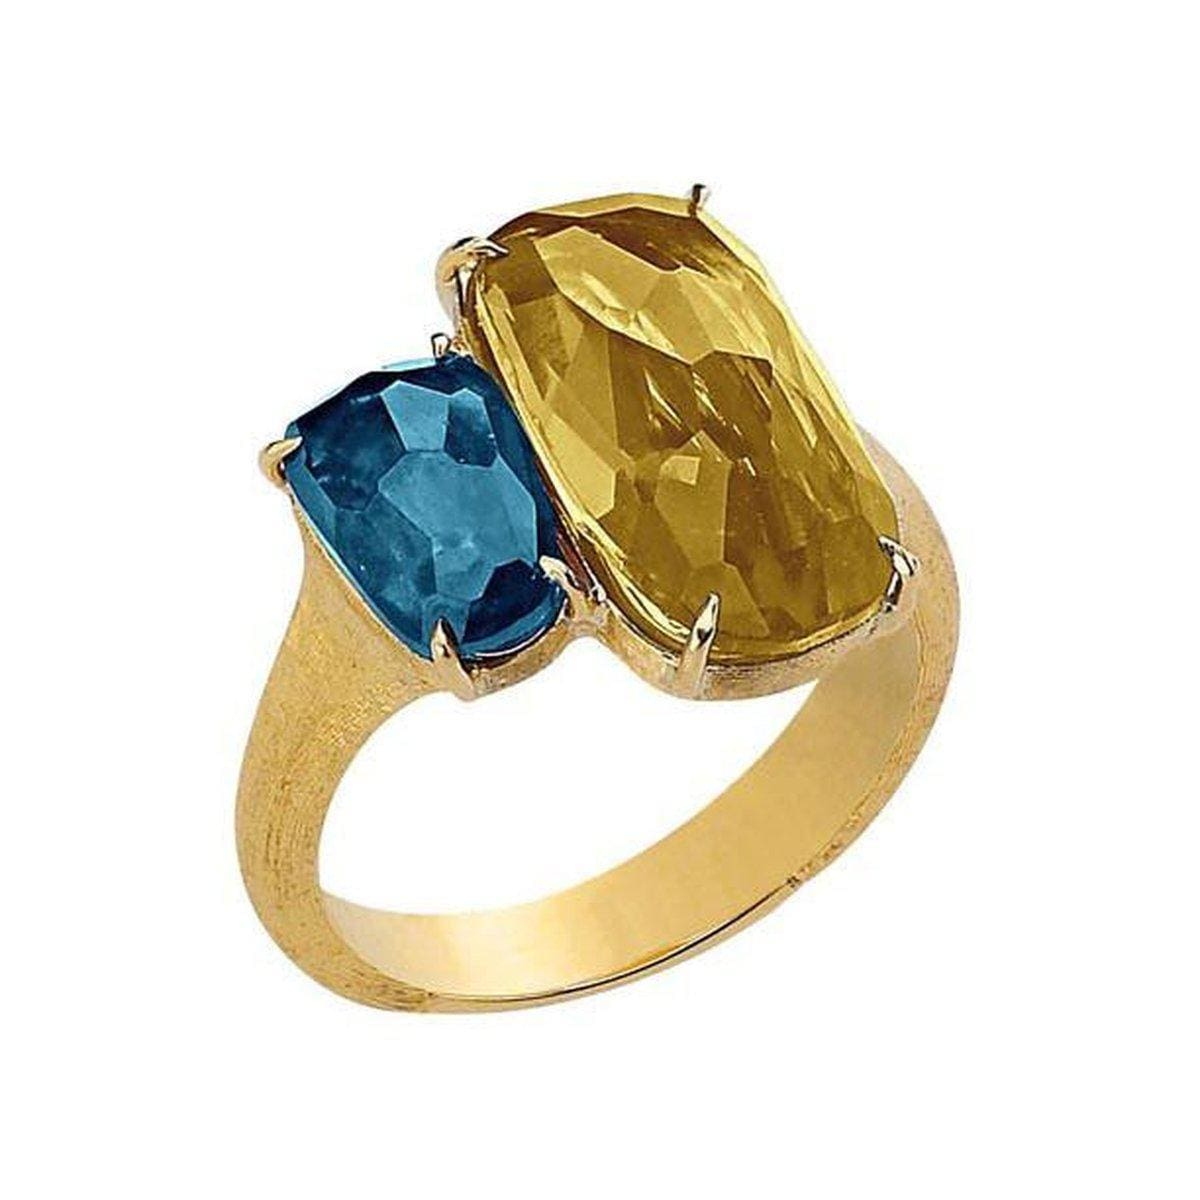 18K Murano White Topaz Yellow Quartz Ring - AB506 MIX112 Y-Marco Bicego-Renee Taylor Gallery